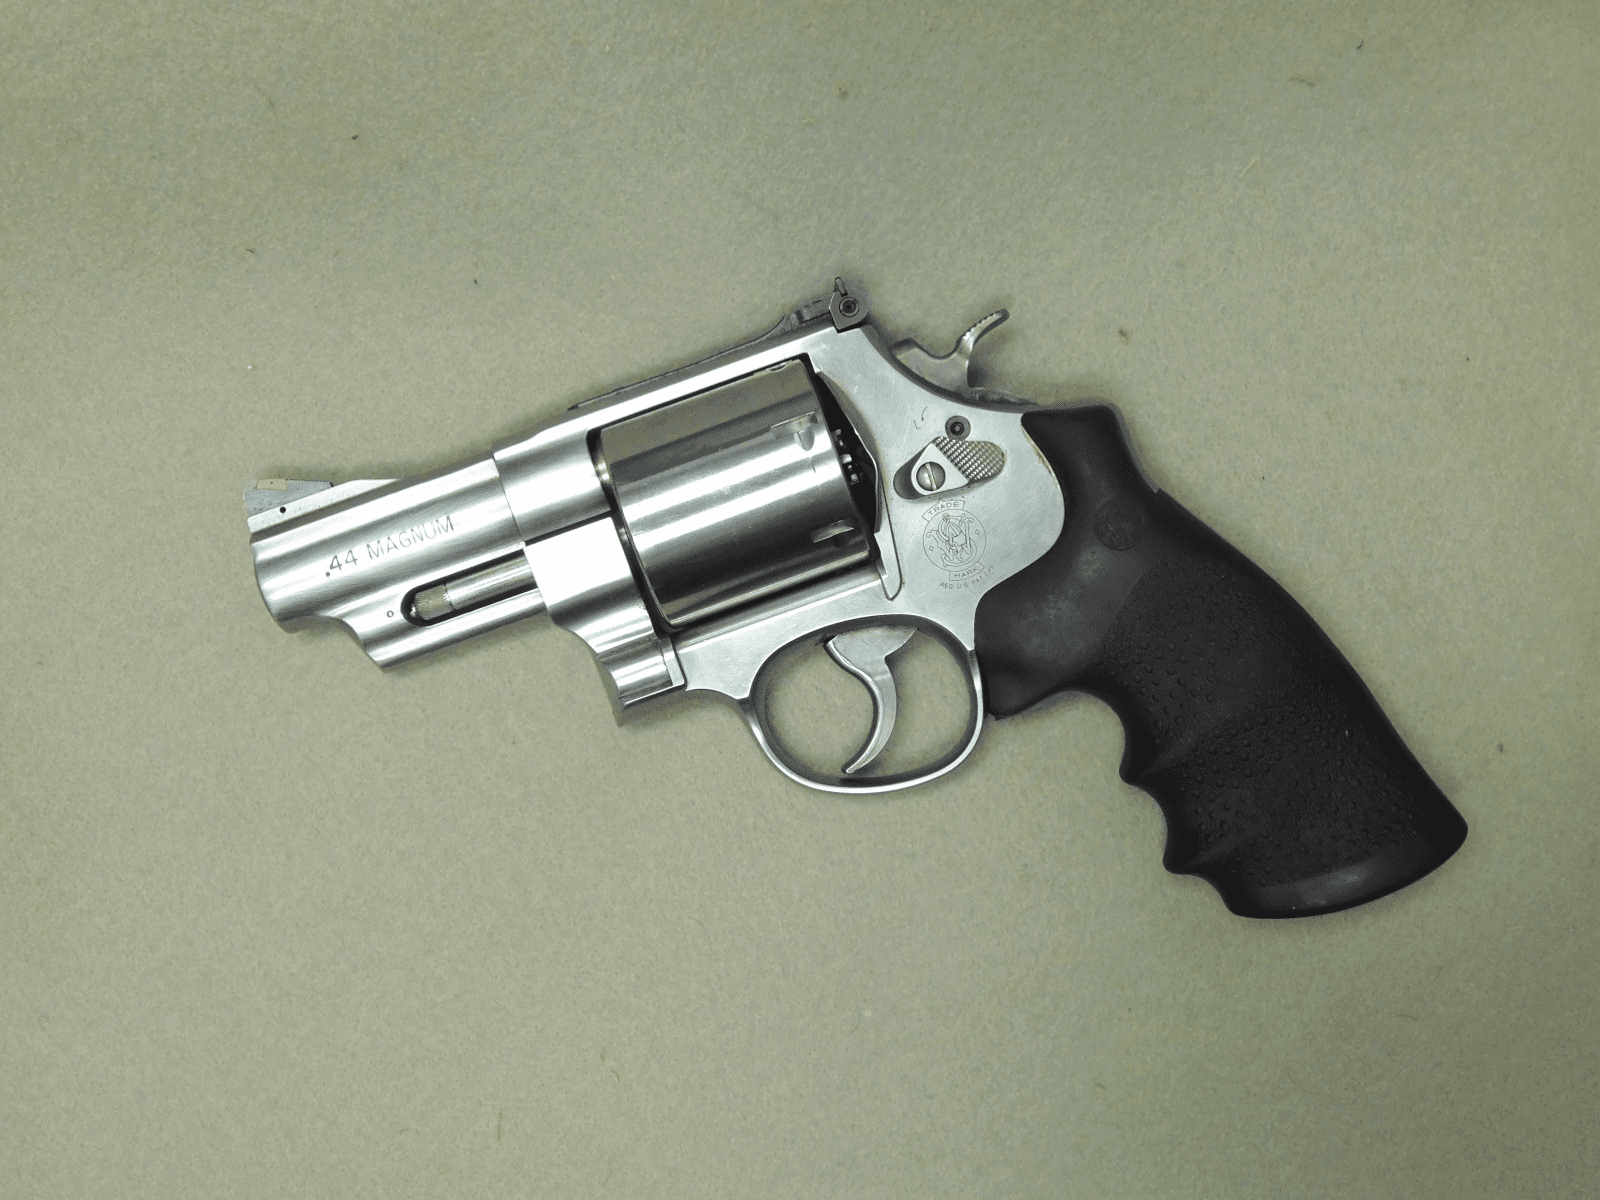 Smith & Wesson 629-6 (.44mag)